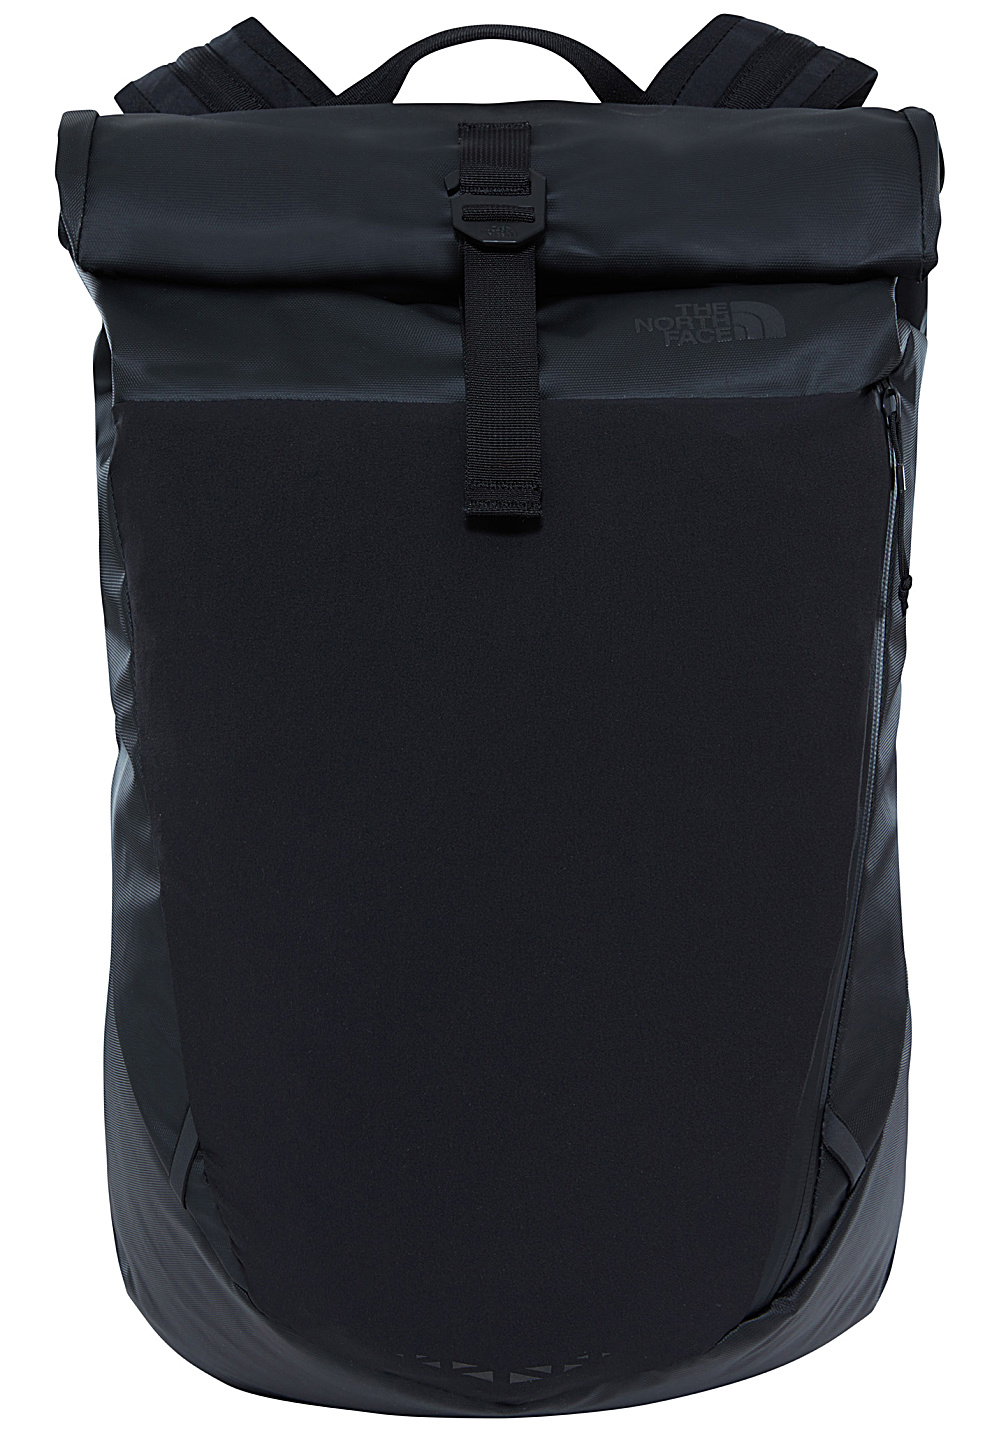 7041007a4 THE NORTH FACE Peckham - Backpack - Black